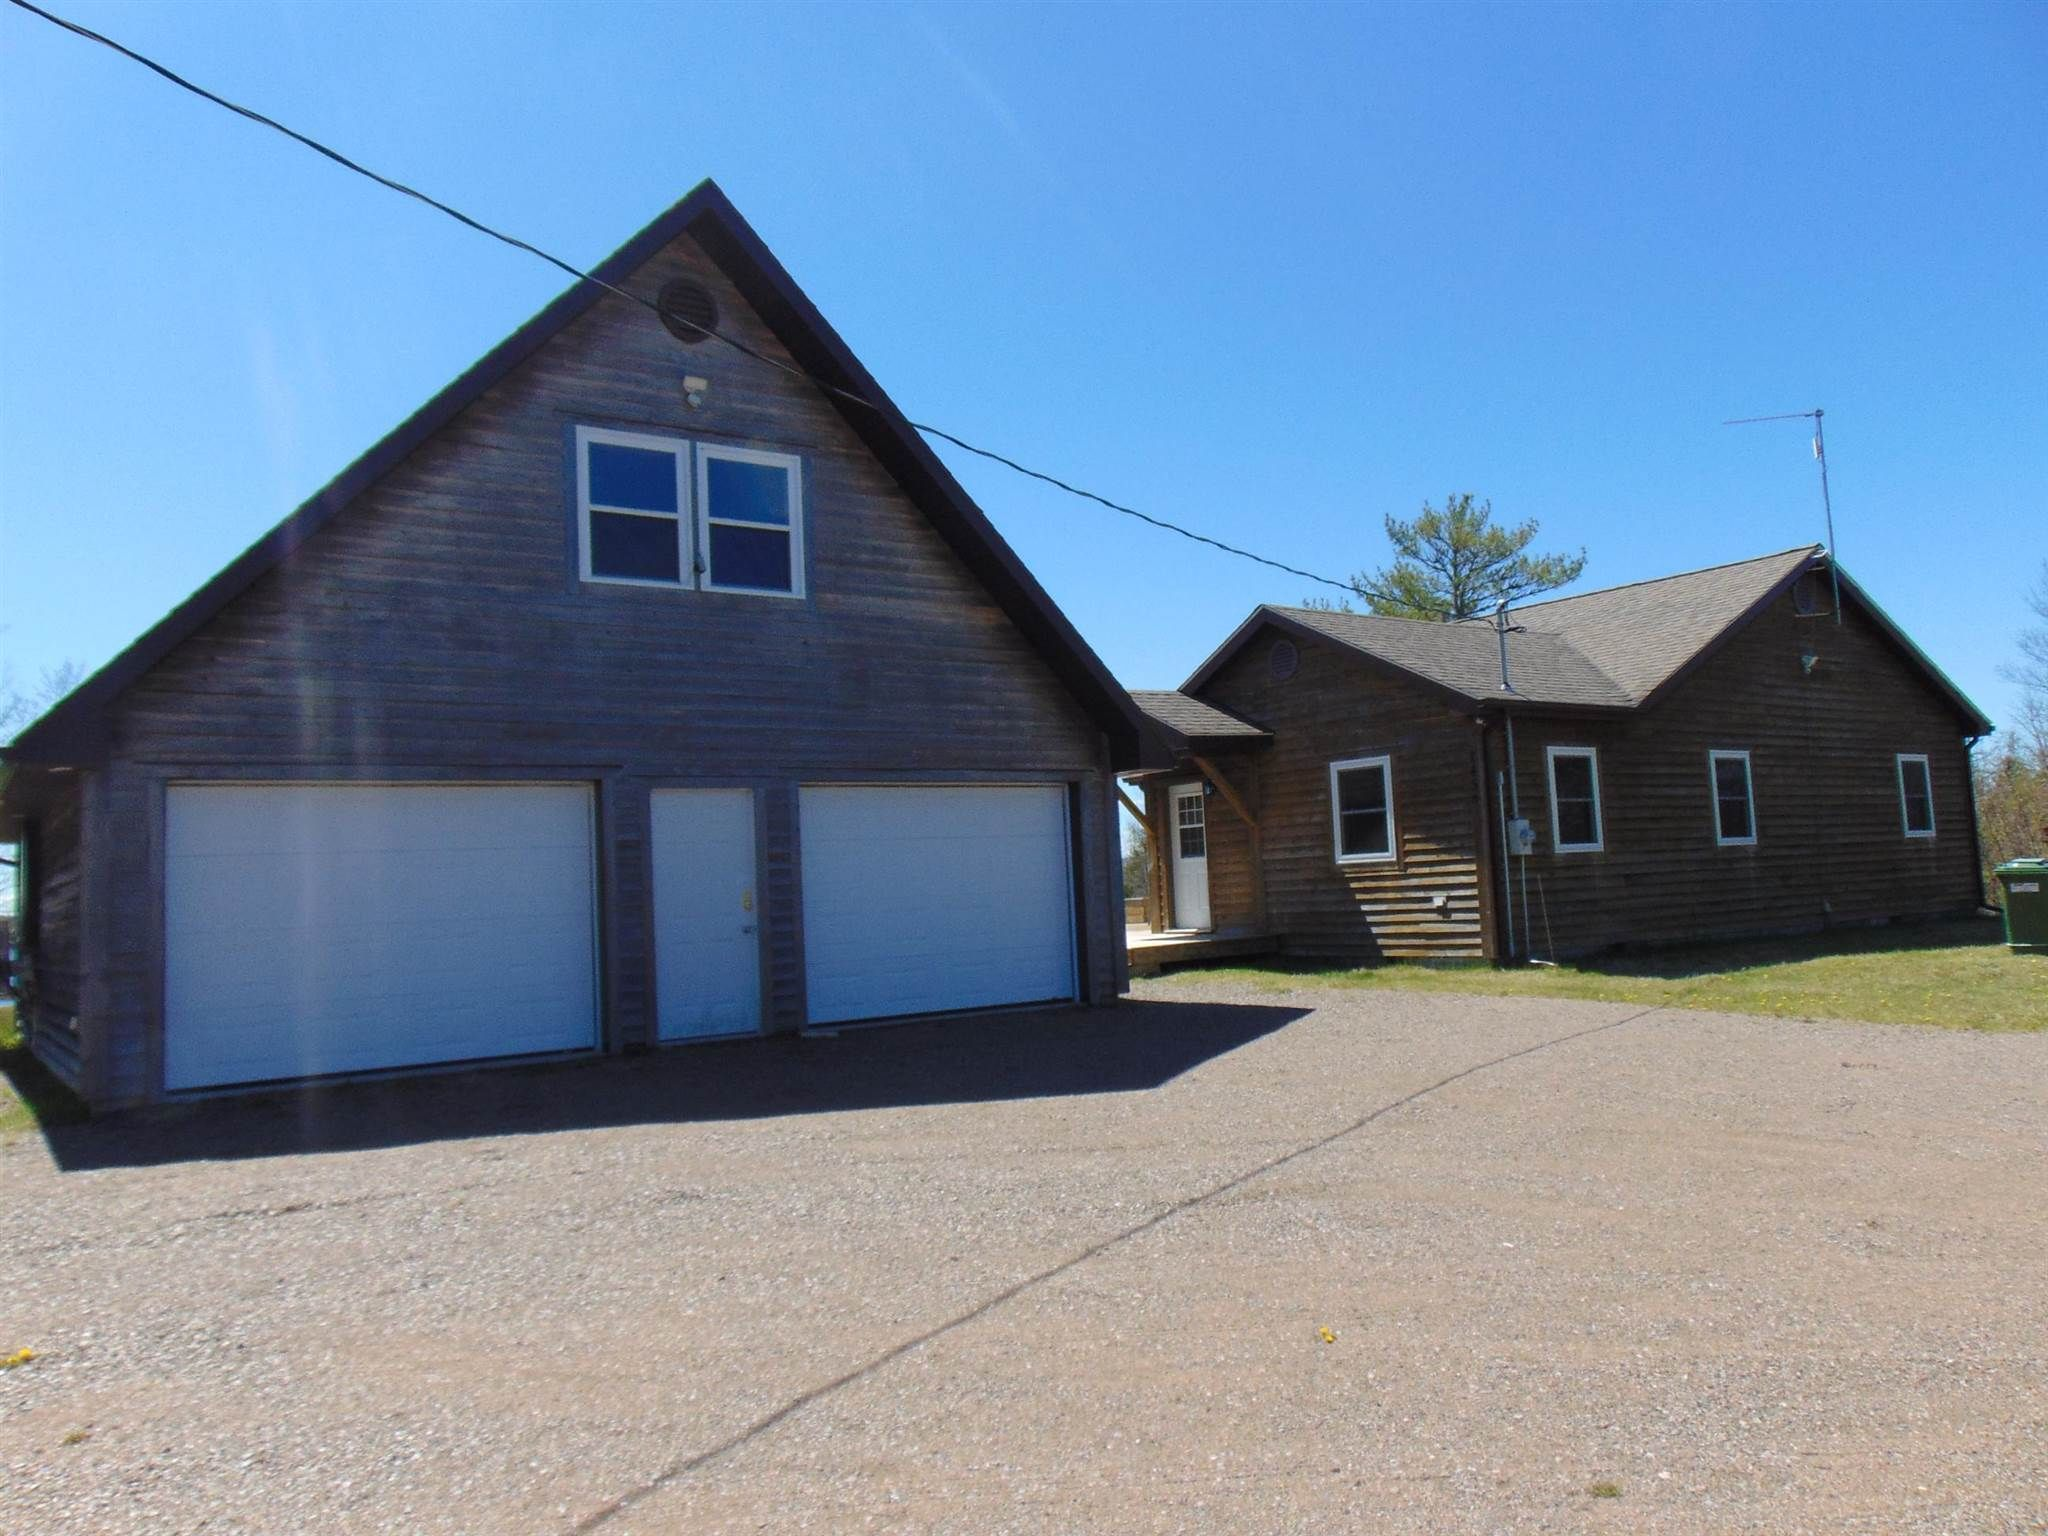 Main Photo: 1456 North River Road in Aylesford: 404-Kings County Residential for sale (Annapolis Valley)  : MLS®# 202105190